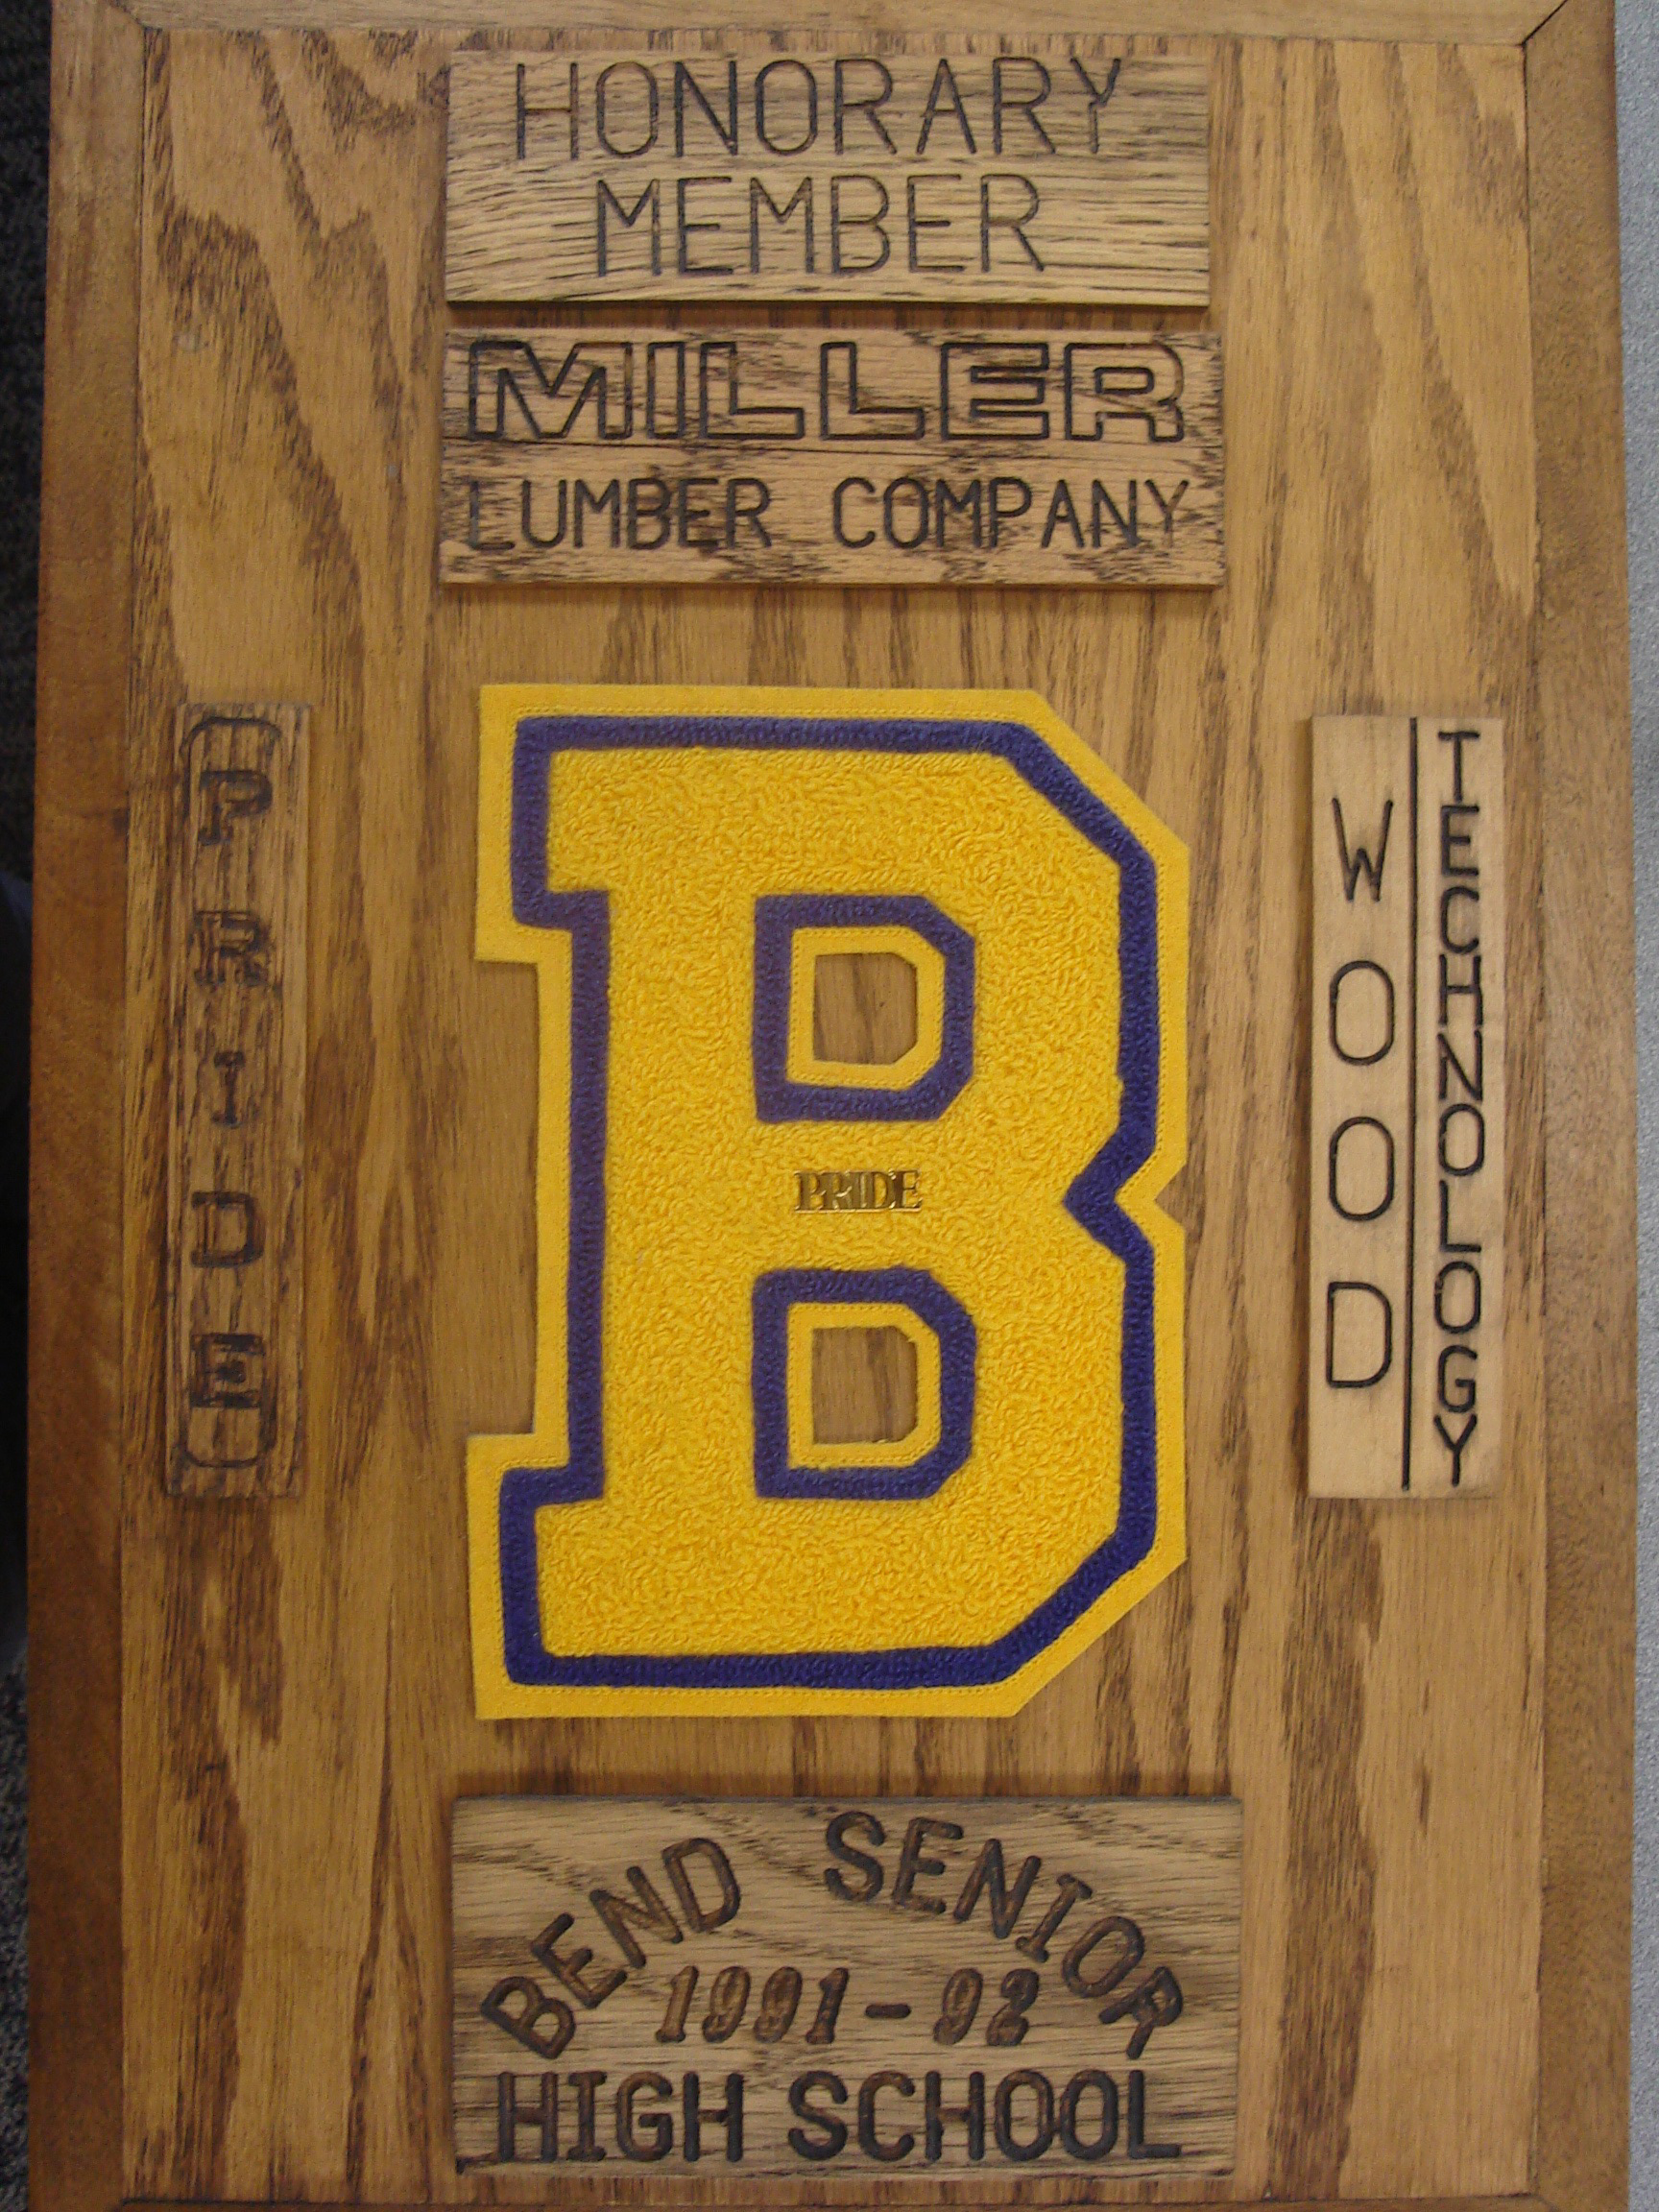 For the 1991-1992 school year, Miller Lumber was named an honorary member of Bend High School's Wood Technology.